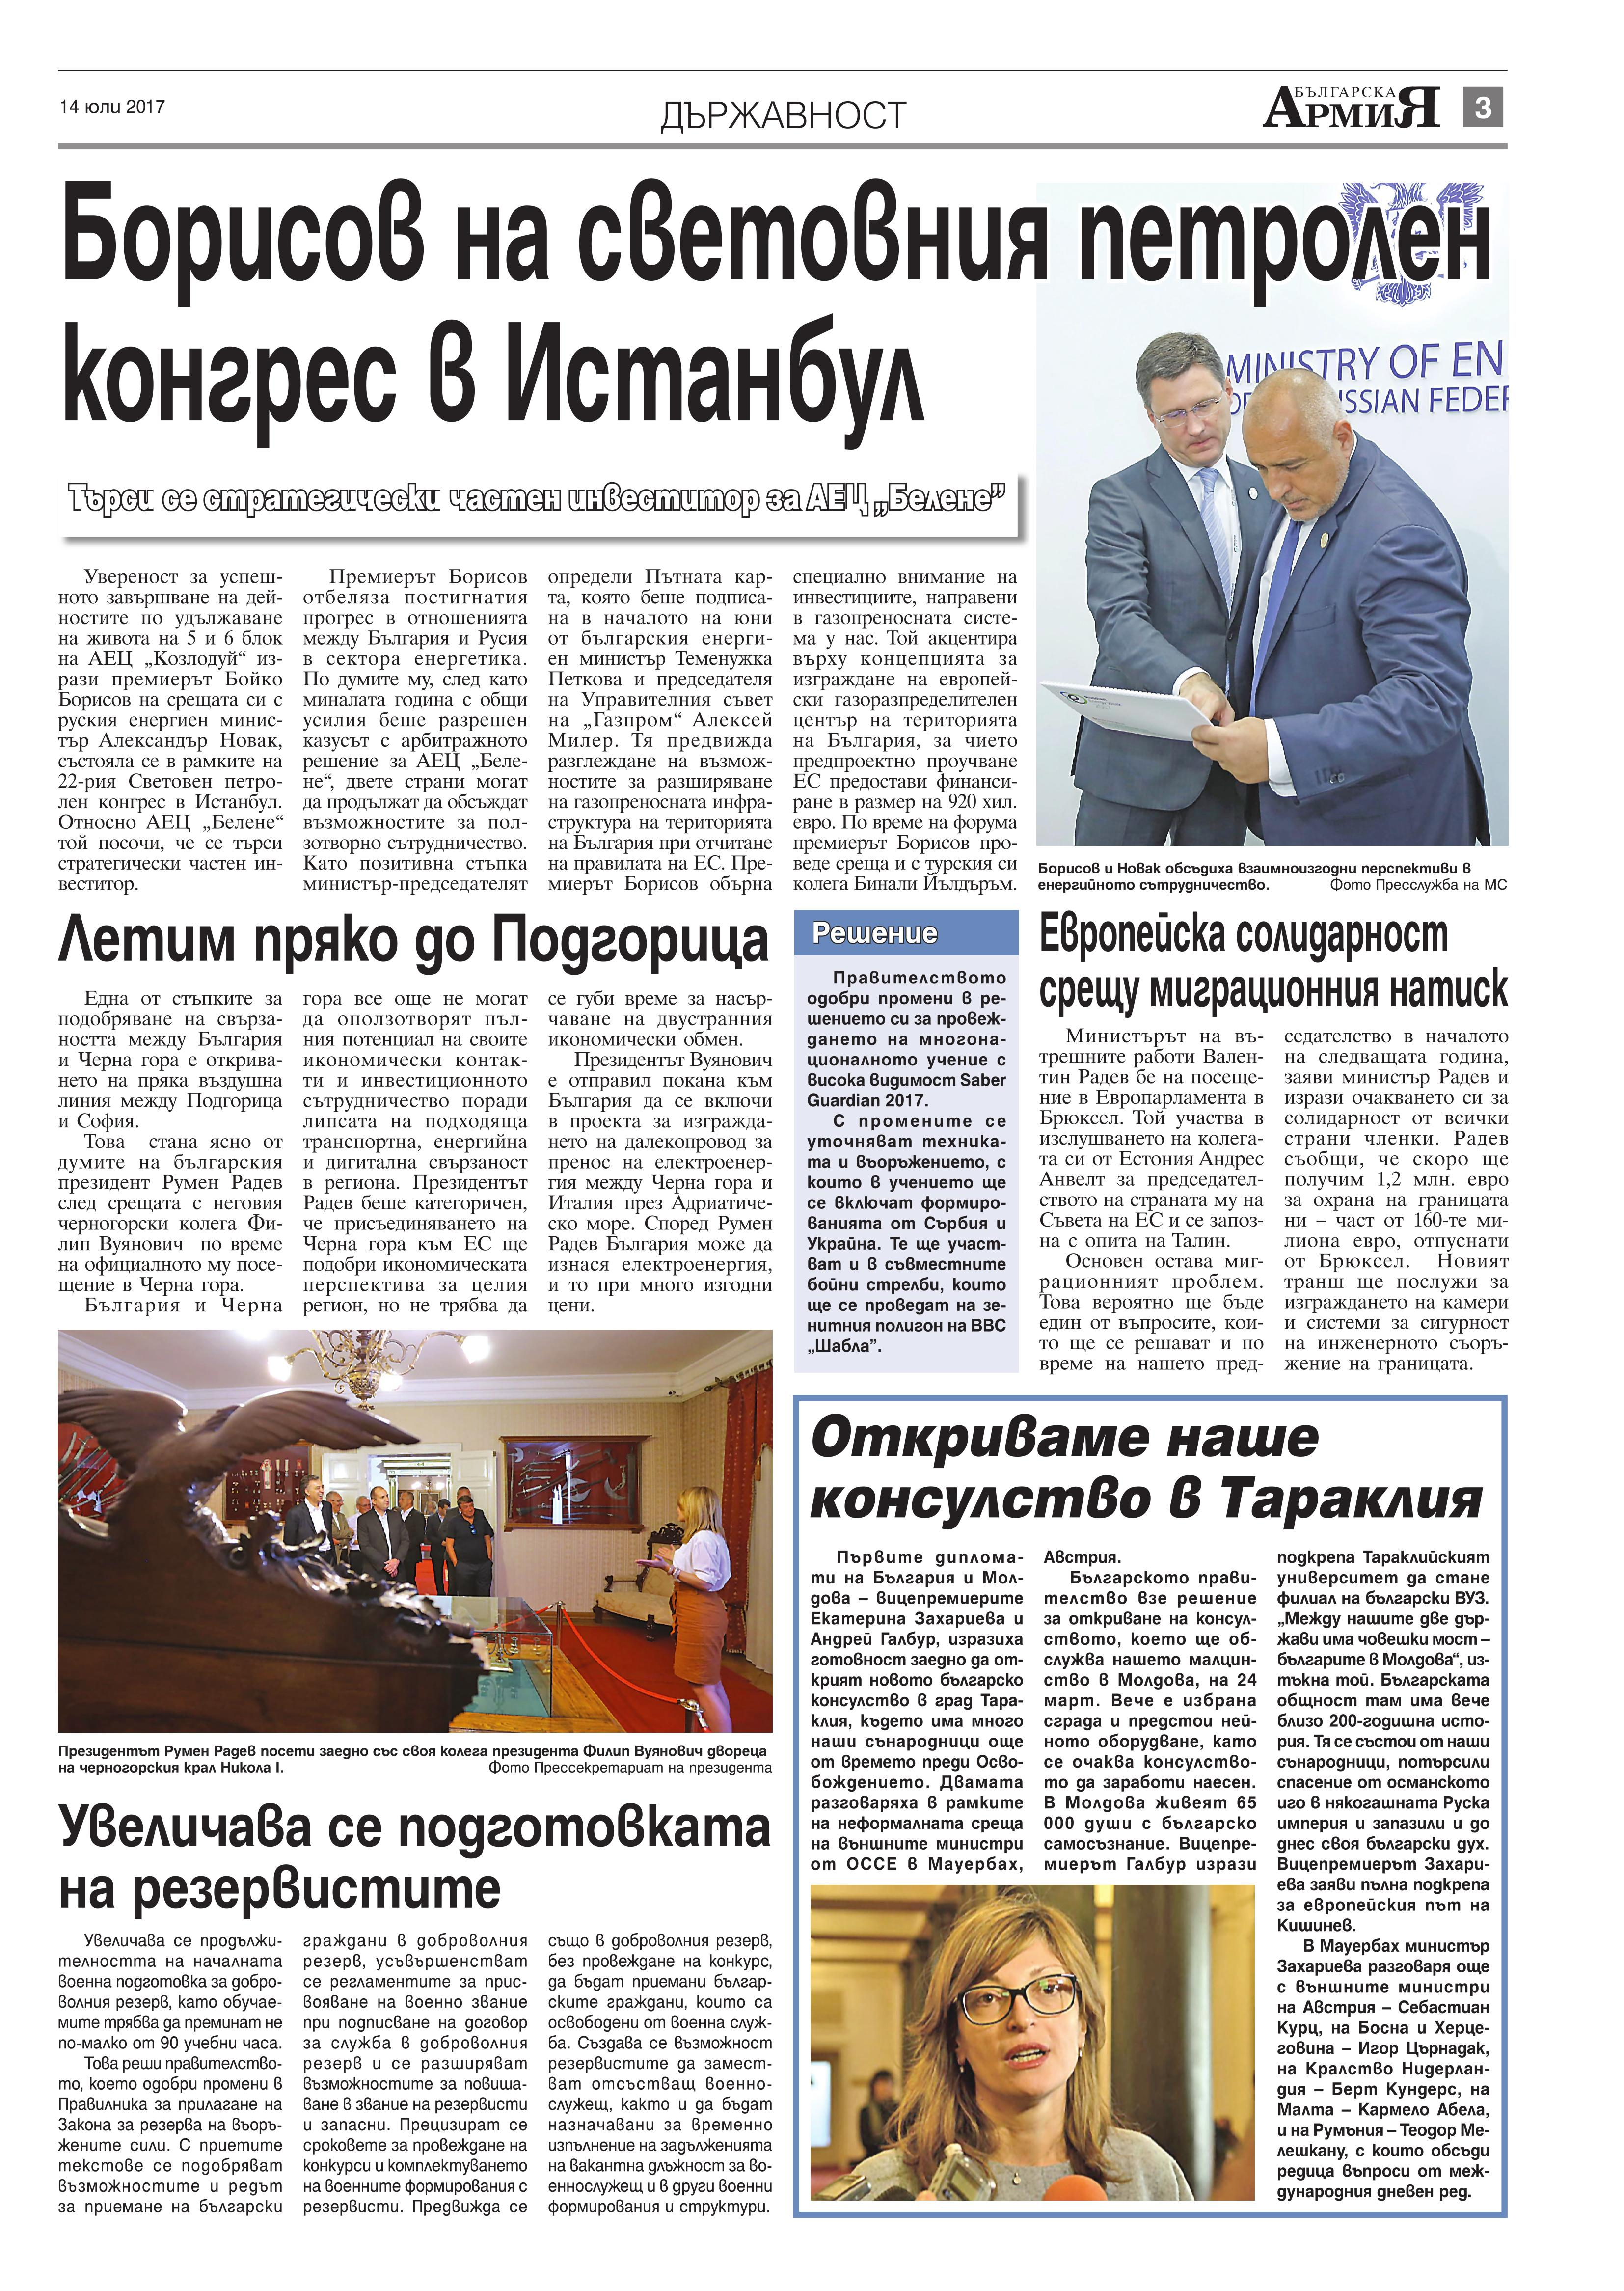 https://www.armymedia.bg/wp-content/uploads/2015/06/03.page1_-25.jpg